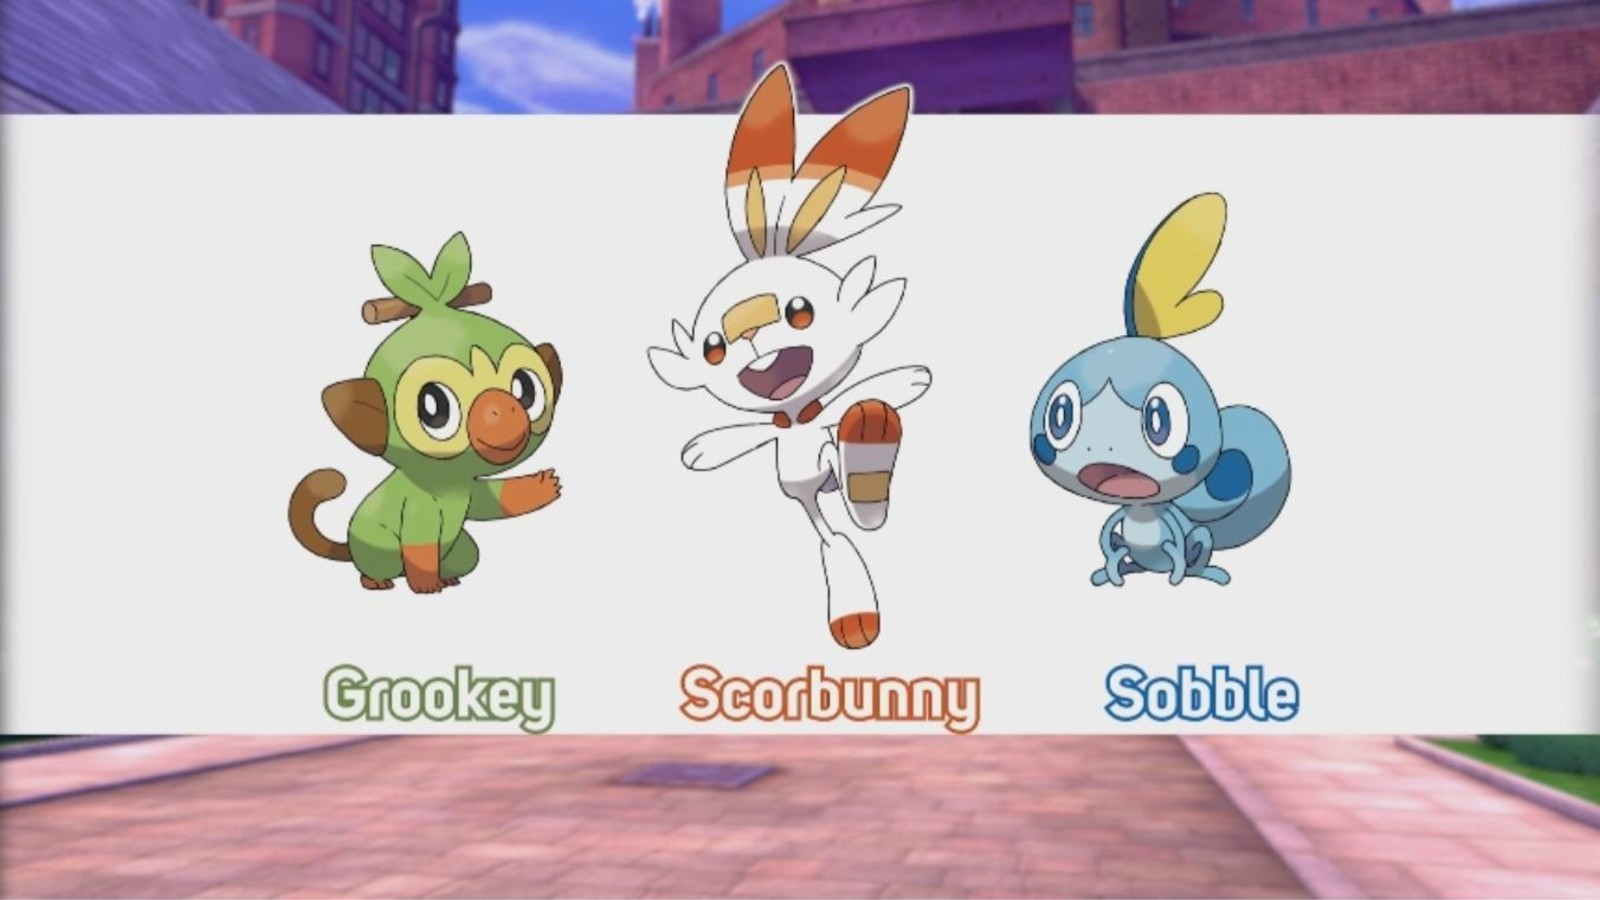 Who are the starter Pokémon in Pokémon Sword and Shield? | iMore